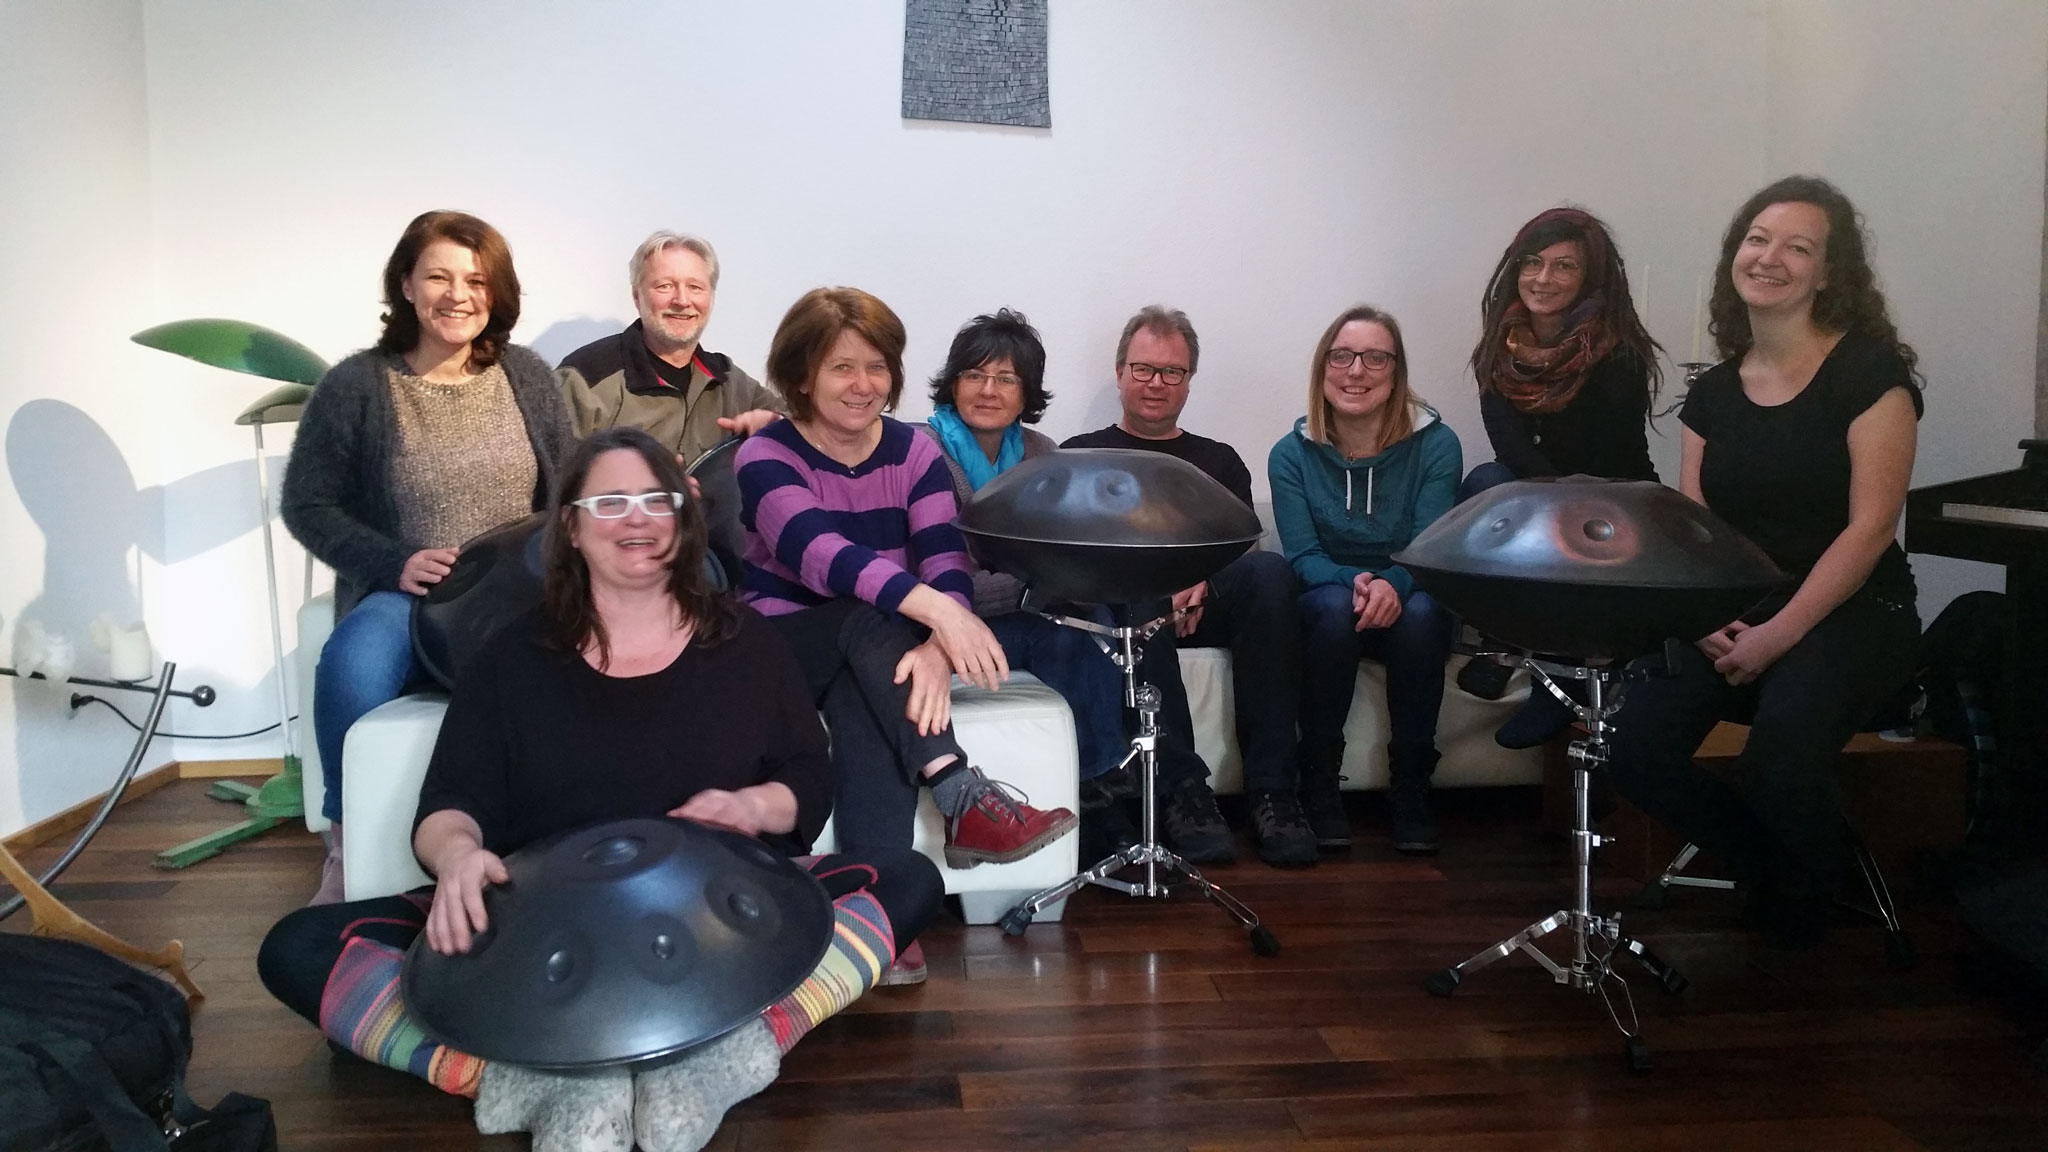 Hang & Handpan Wochenend-Workshop